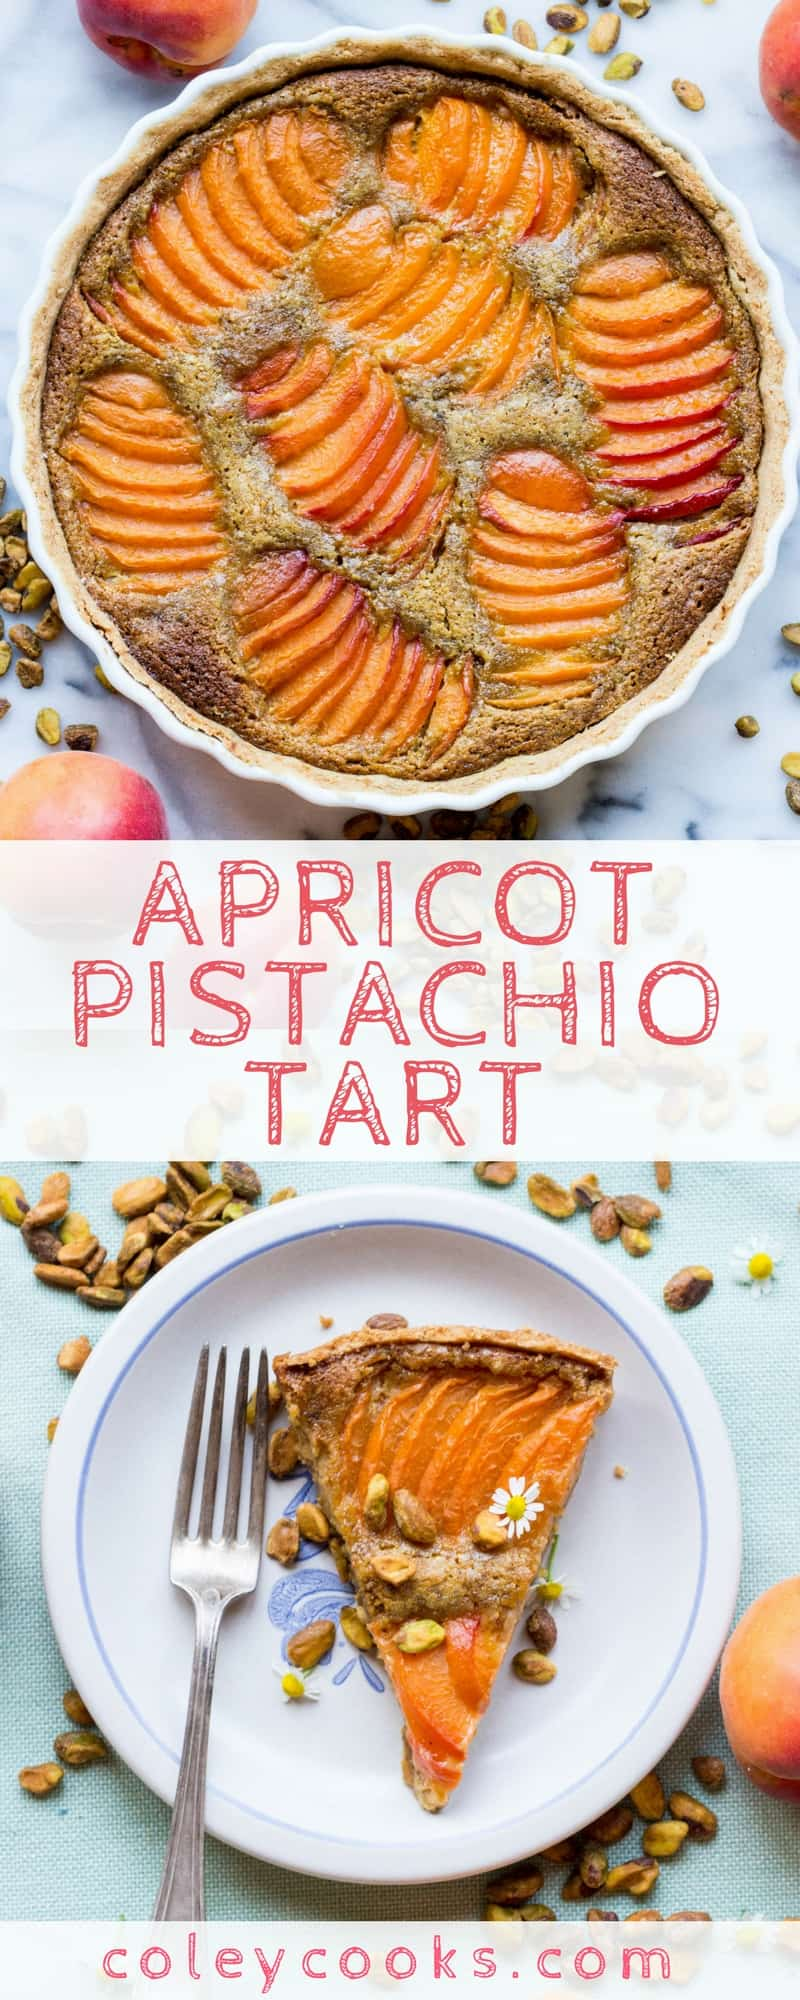 APRICOT PISTACHIO TART | Buttery shortbread crust, pistachio frangipane and juicy fresh apricots. A beautiful, surprisingly easy summer dessert recipe! | ColeyCooks.com